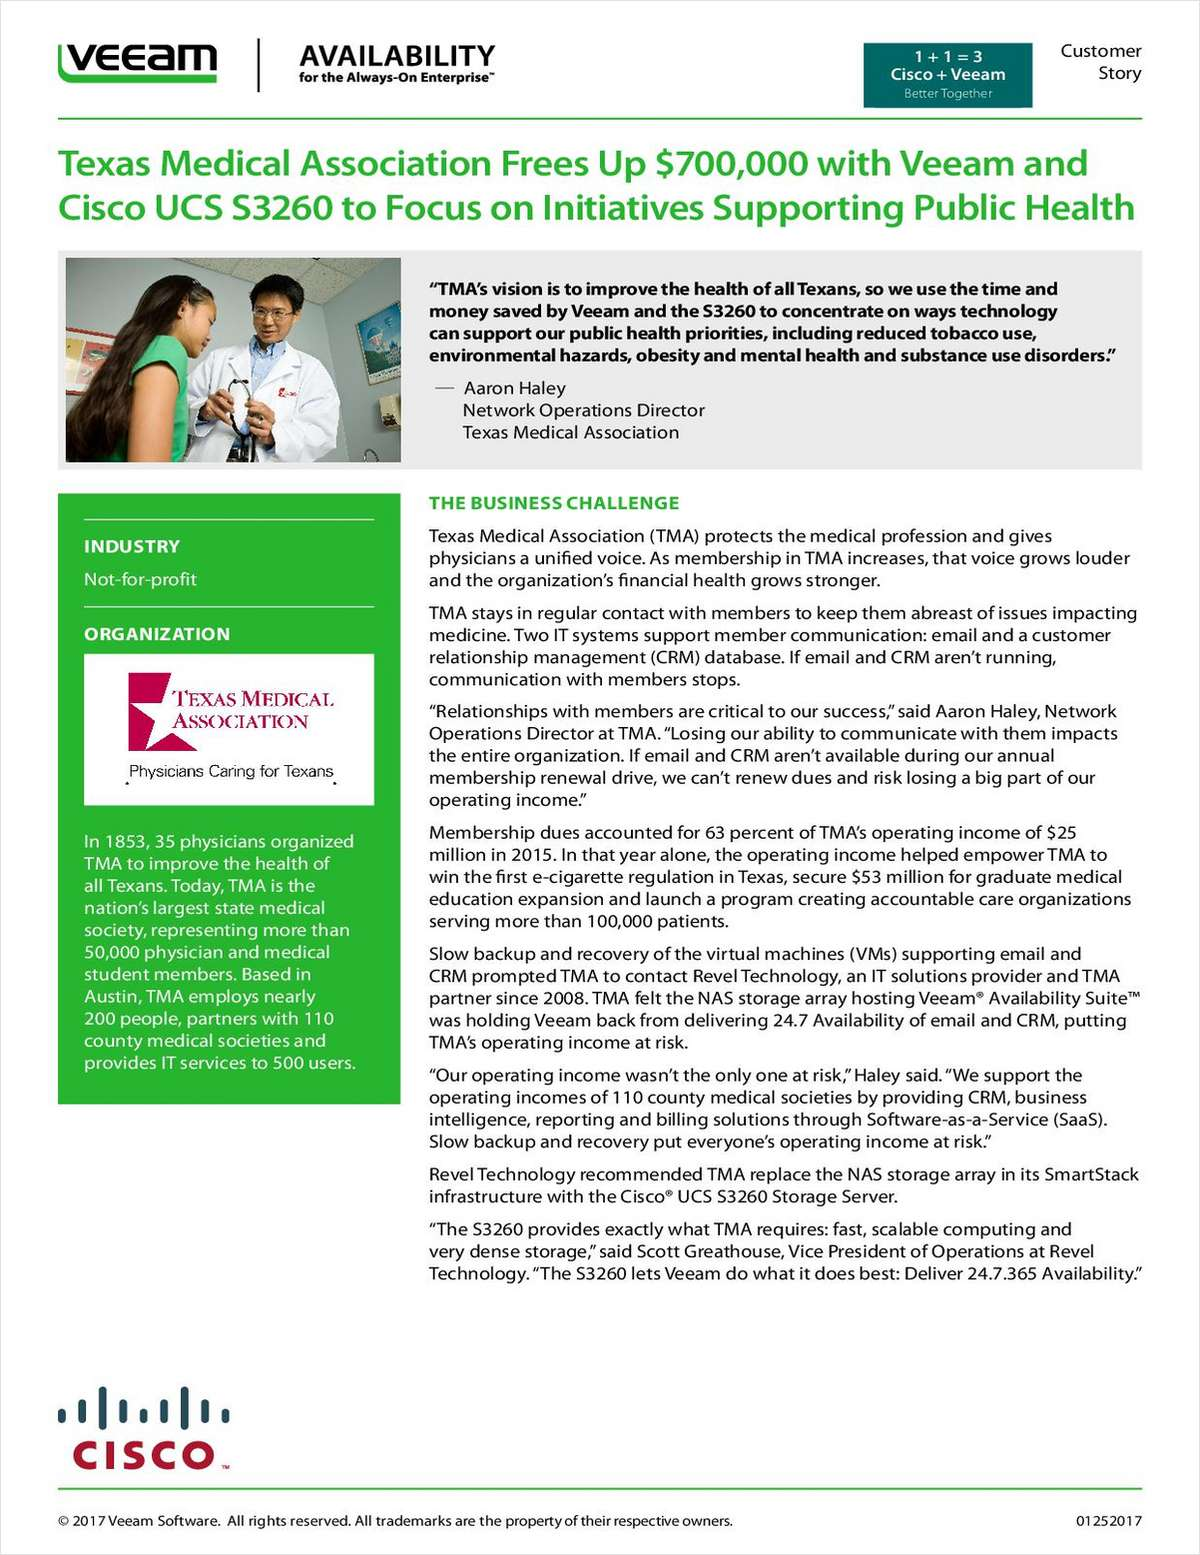 Texas Medical Association Frees Up $700,000 with Veeam and Cisco UCS S3260 to Focus on Initiatives Supporting Public Health